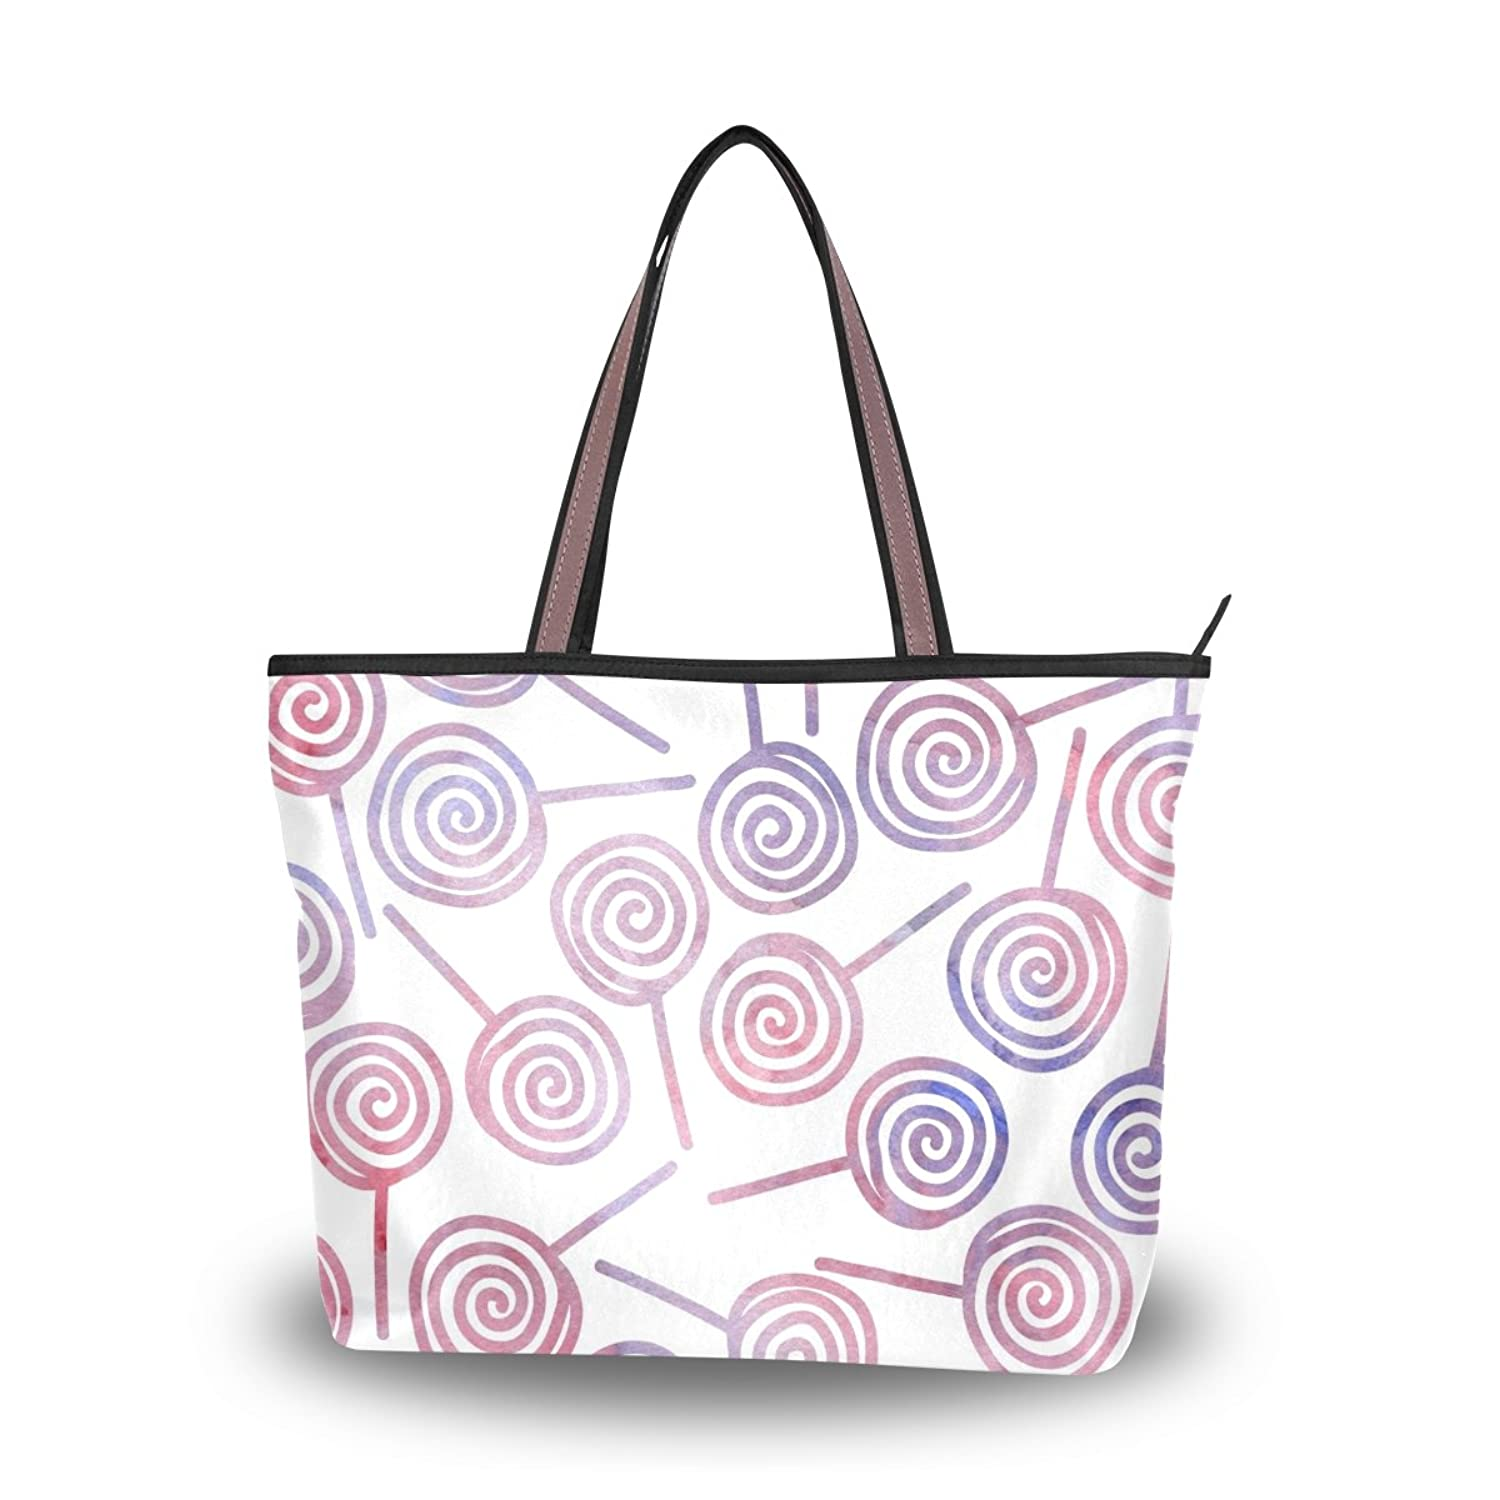 Senya Women's Handbag Microfiber Large Tote Shoulder Bag, Watercolor Pattern